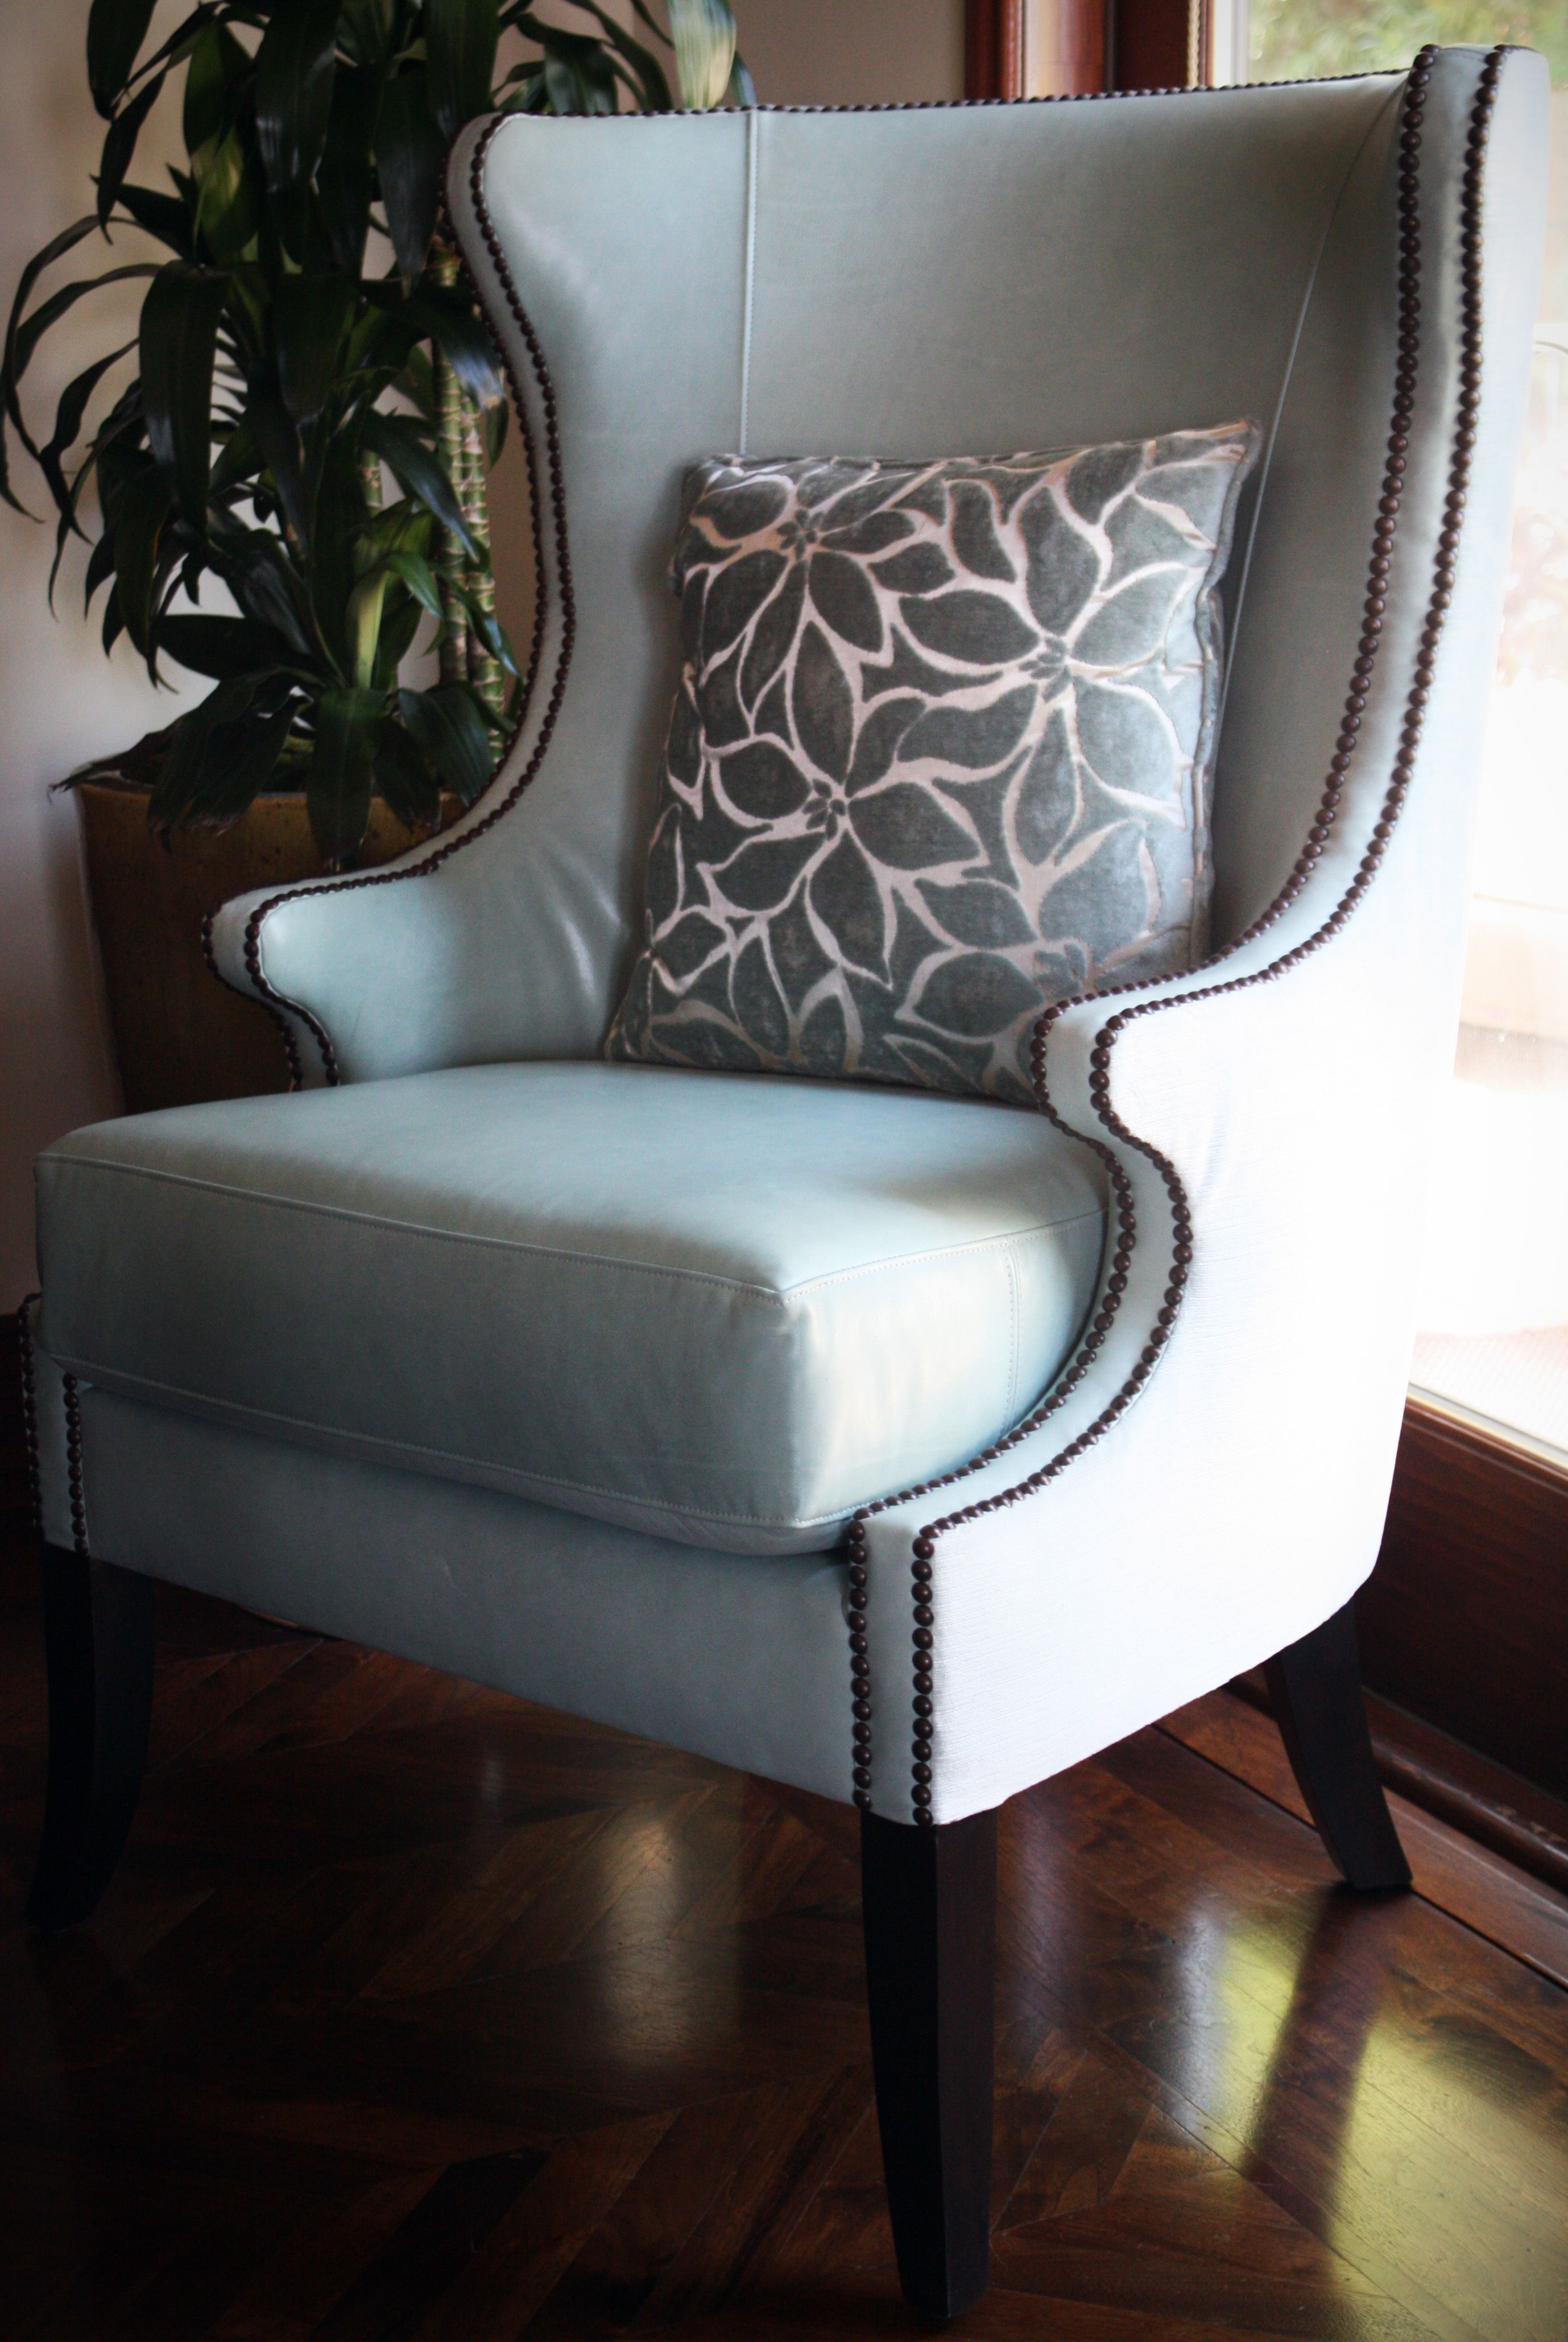 Host/Hostess chairs  - luscious leather inside and soft velvet outside - so special